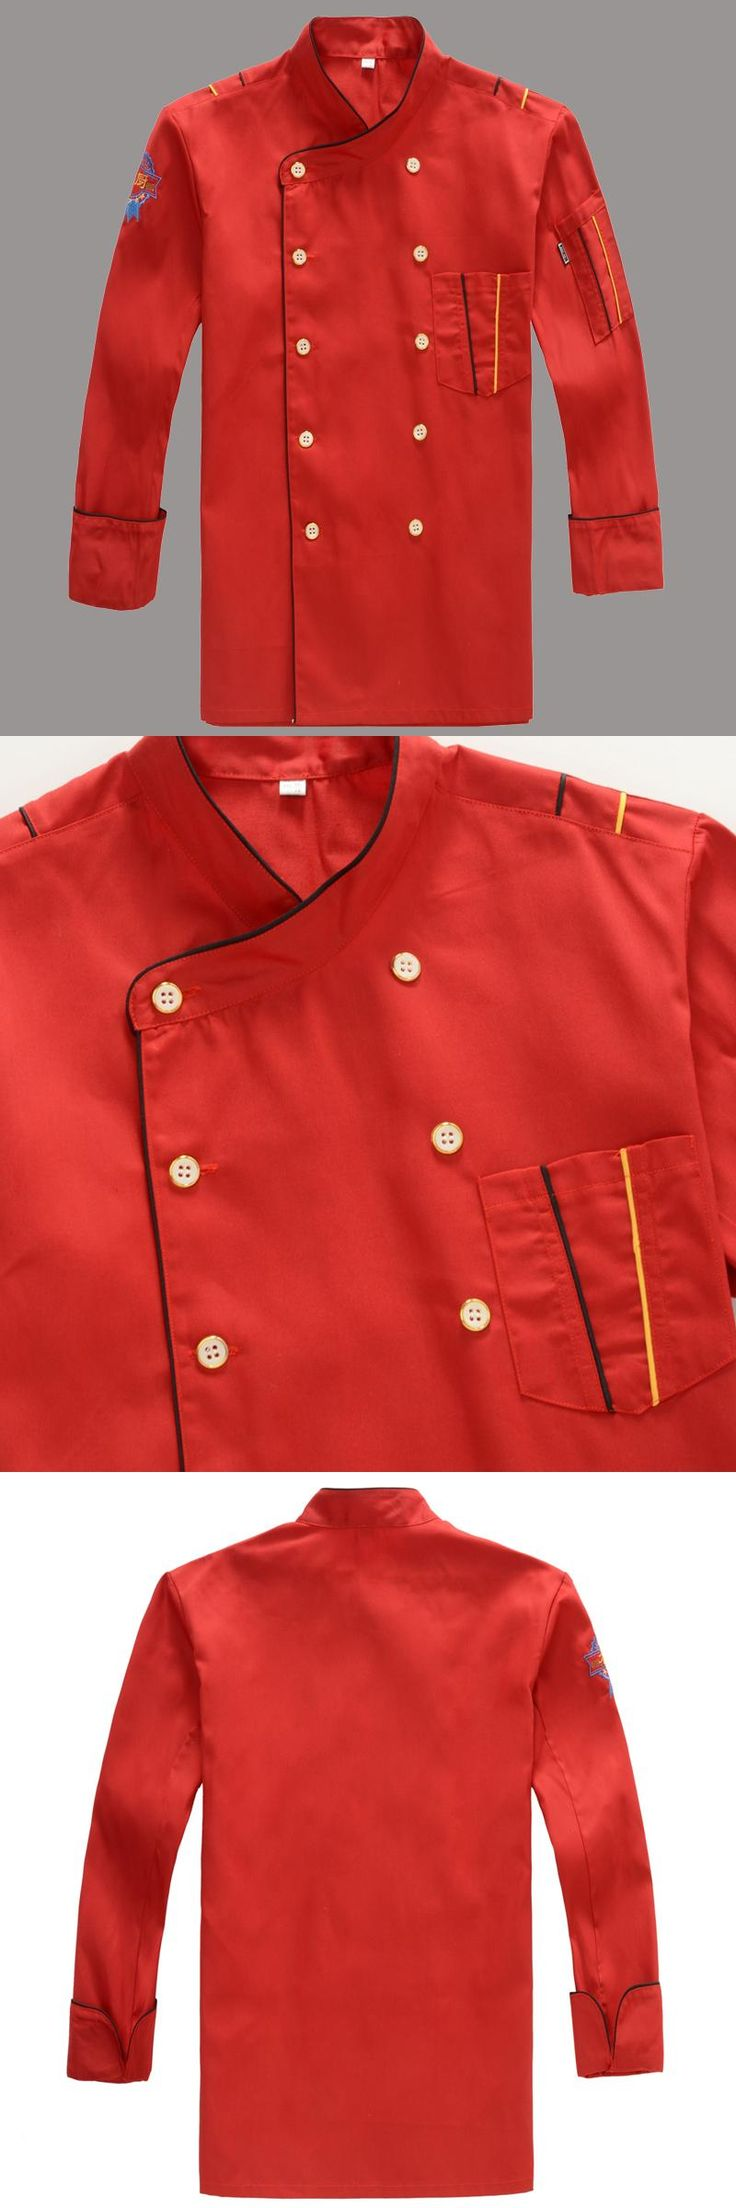 Chef uniform Wear for men Long Sleeved Hotel Chef jacket Red Double Breasted Suit Kitchen Restaurant Chef uniform